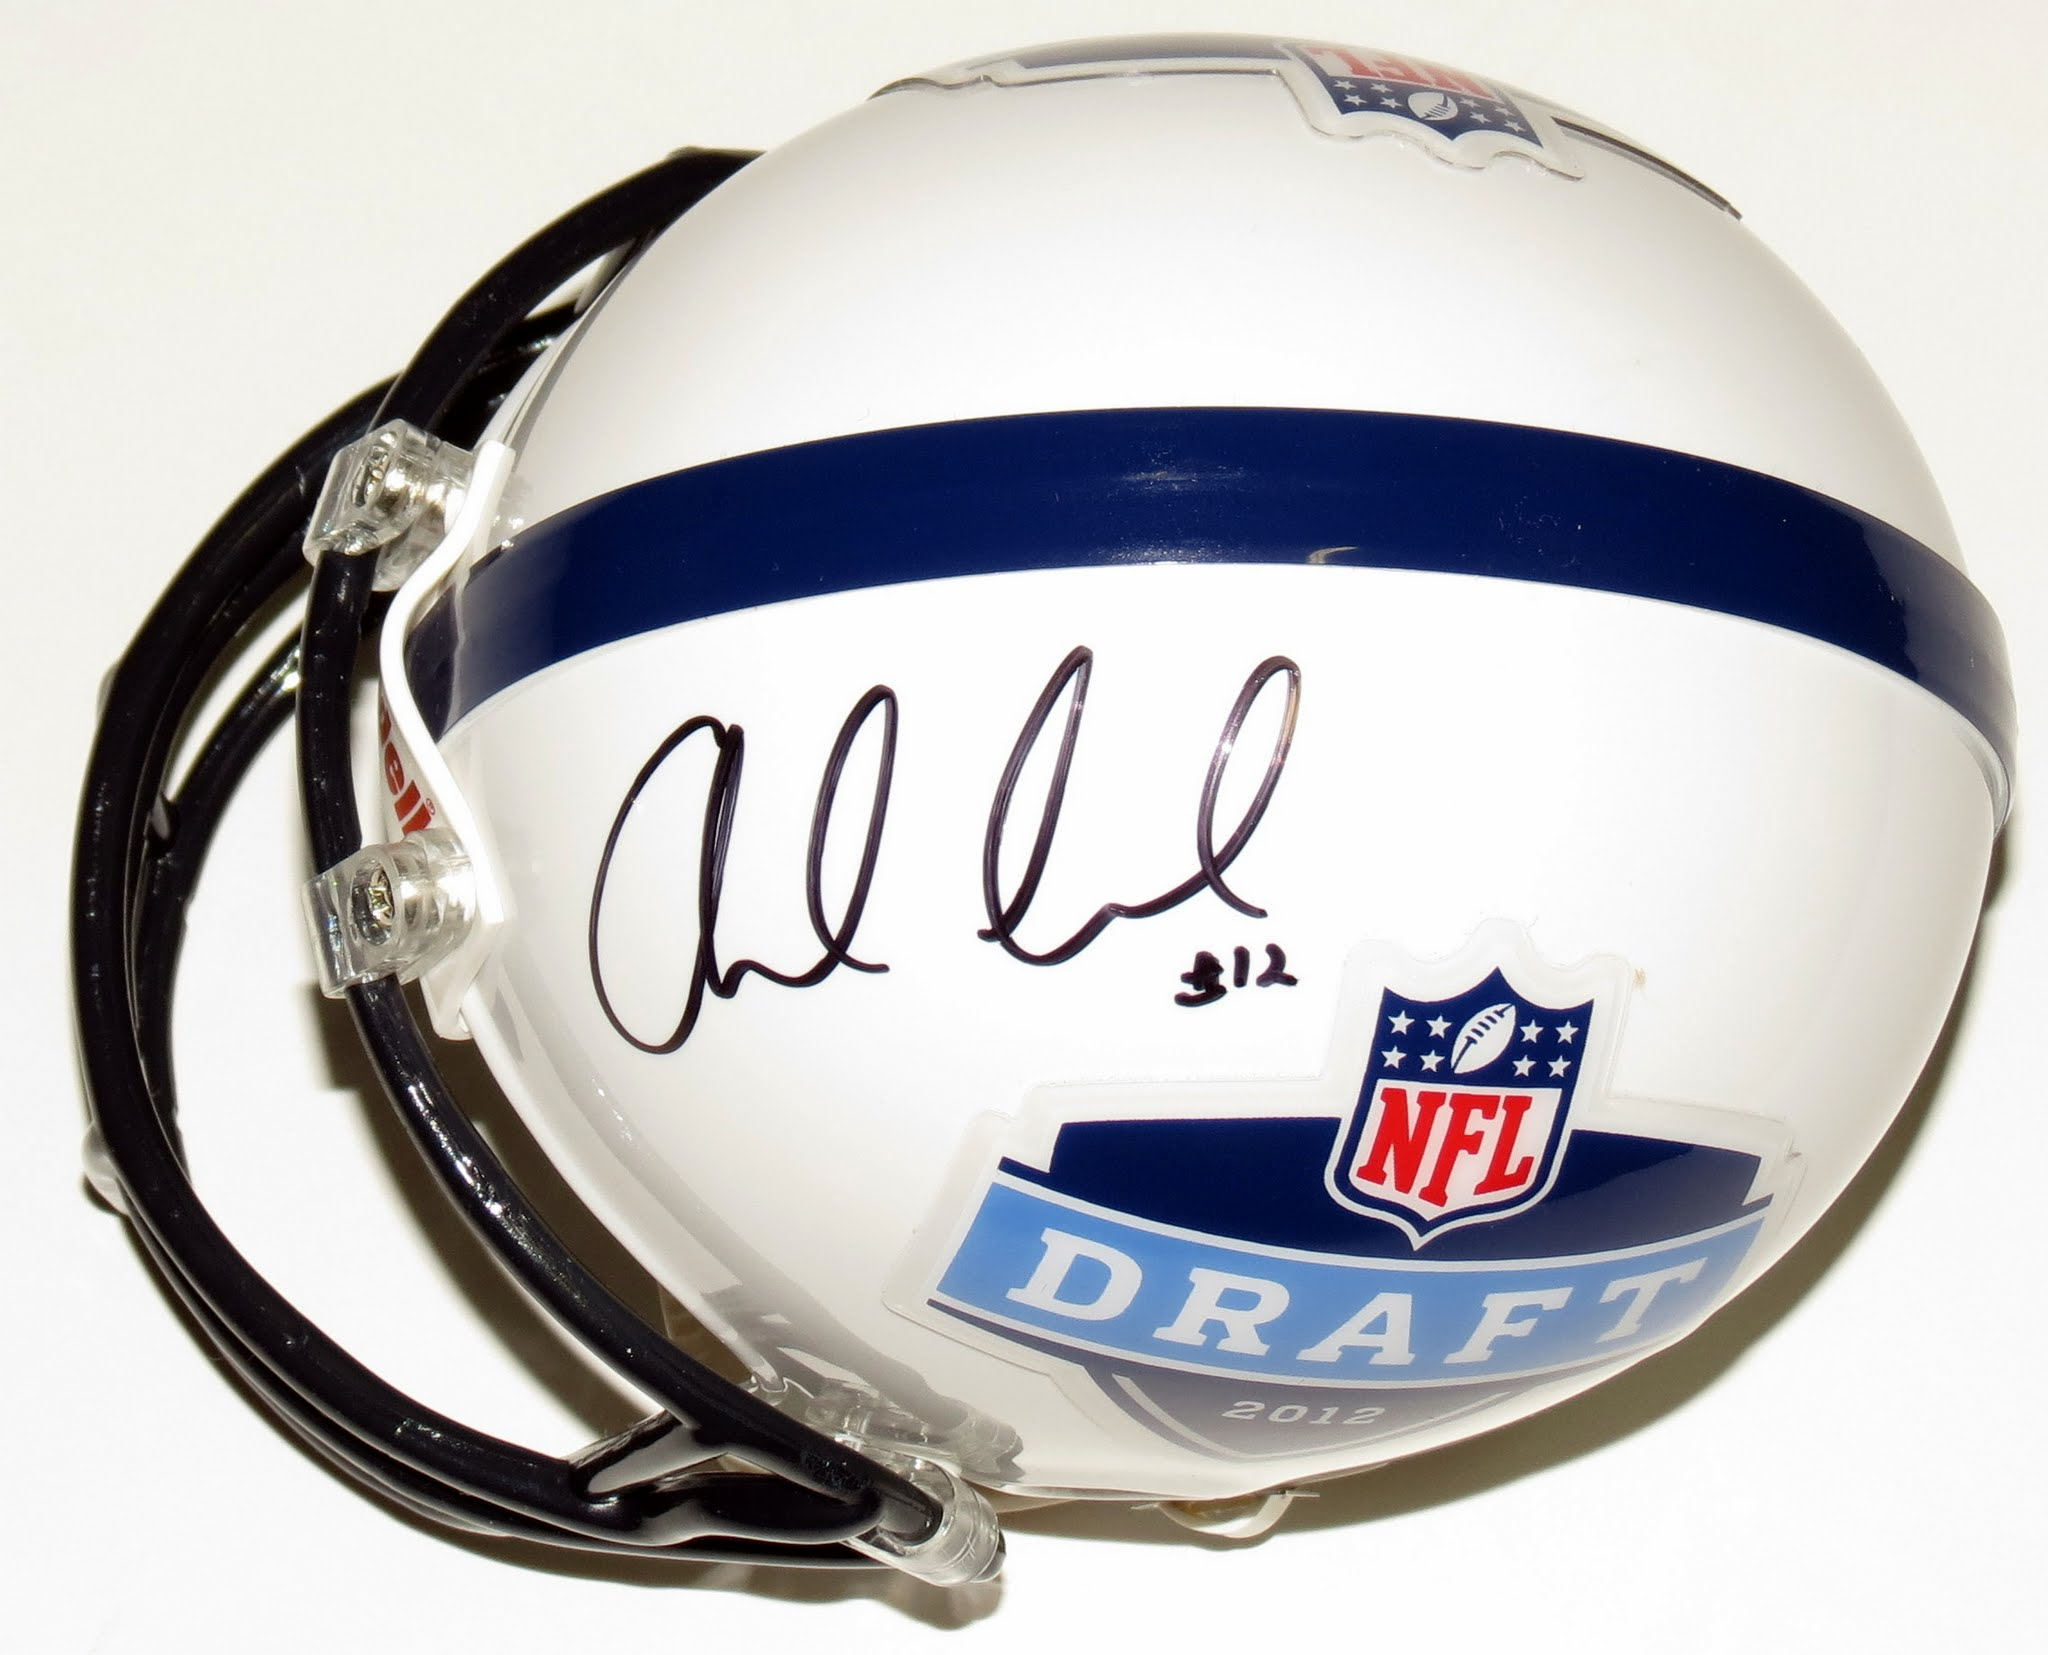 Andrew Luck Signed 2012 NFL Draft Rookie Year Mini Helmet - BAS COA Authenticated